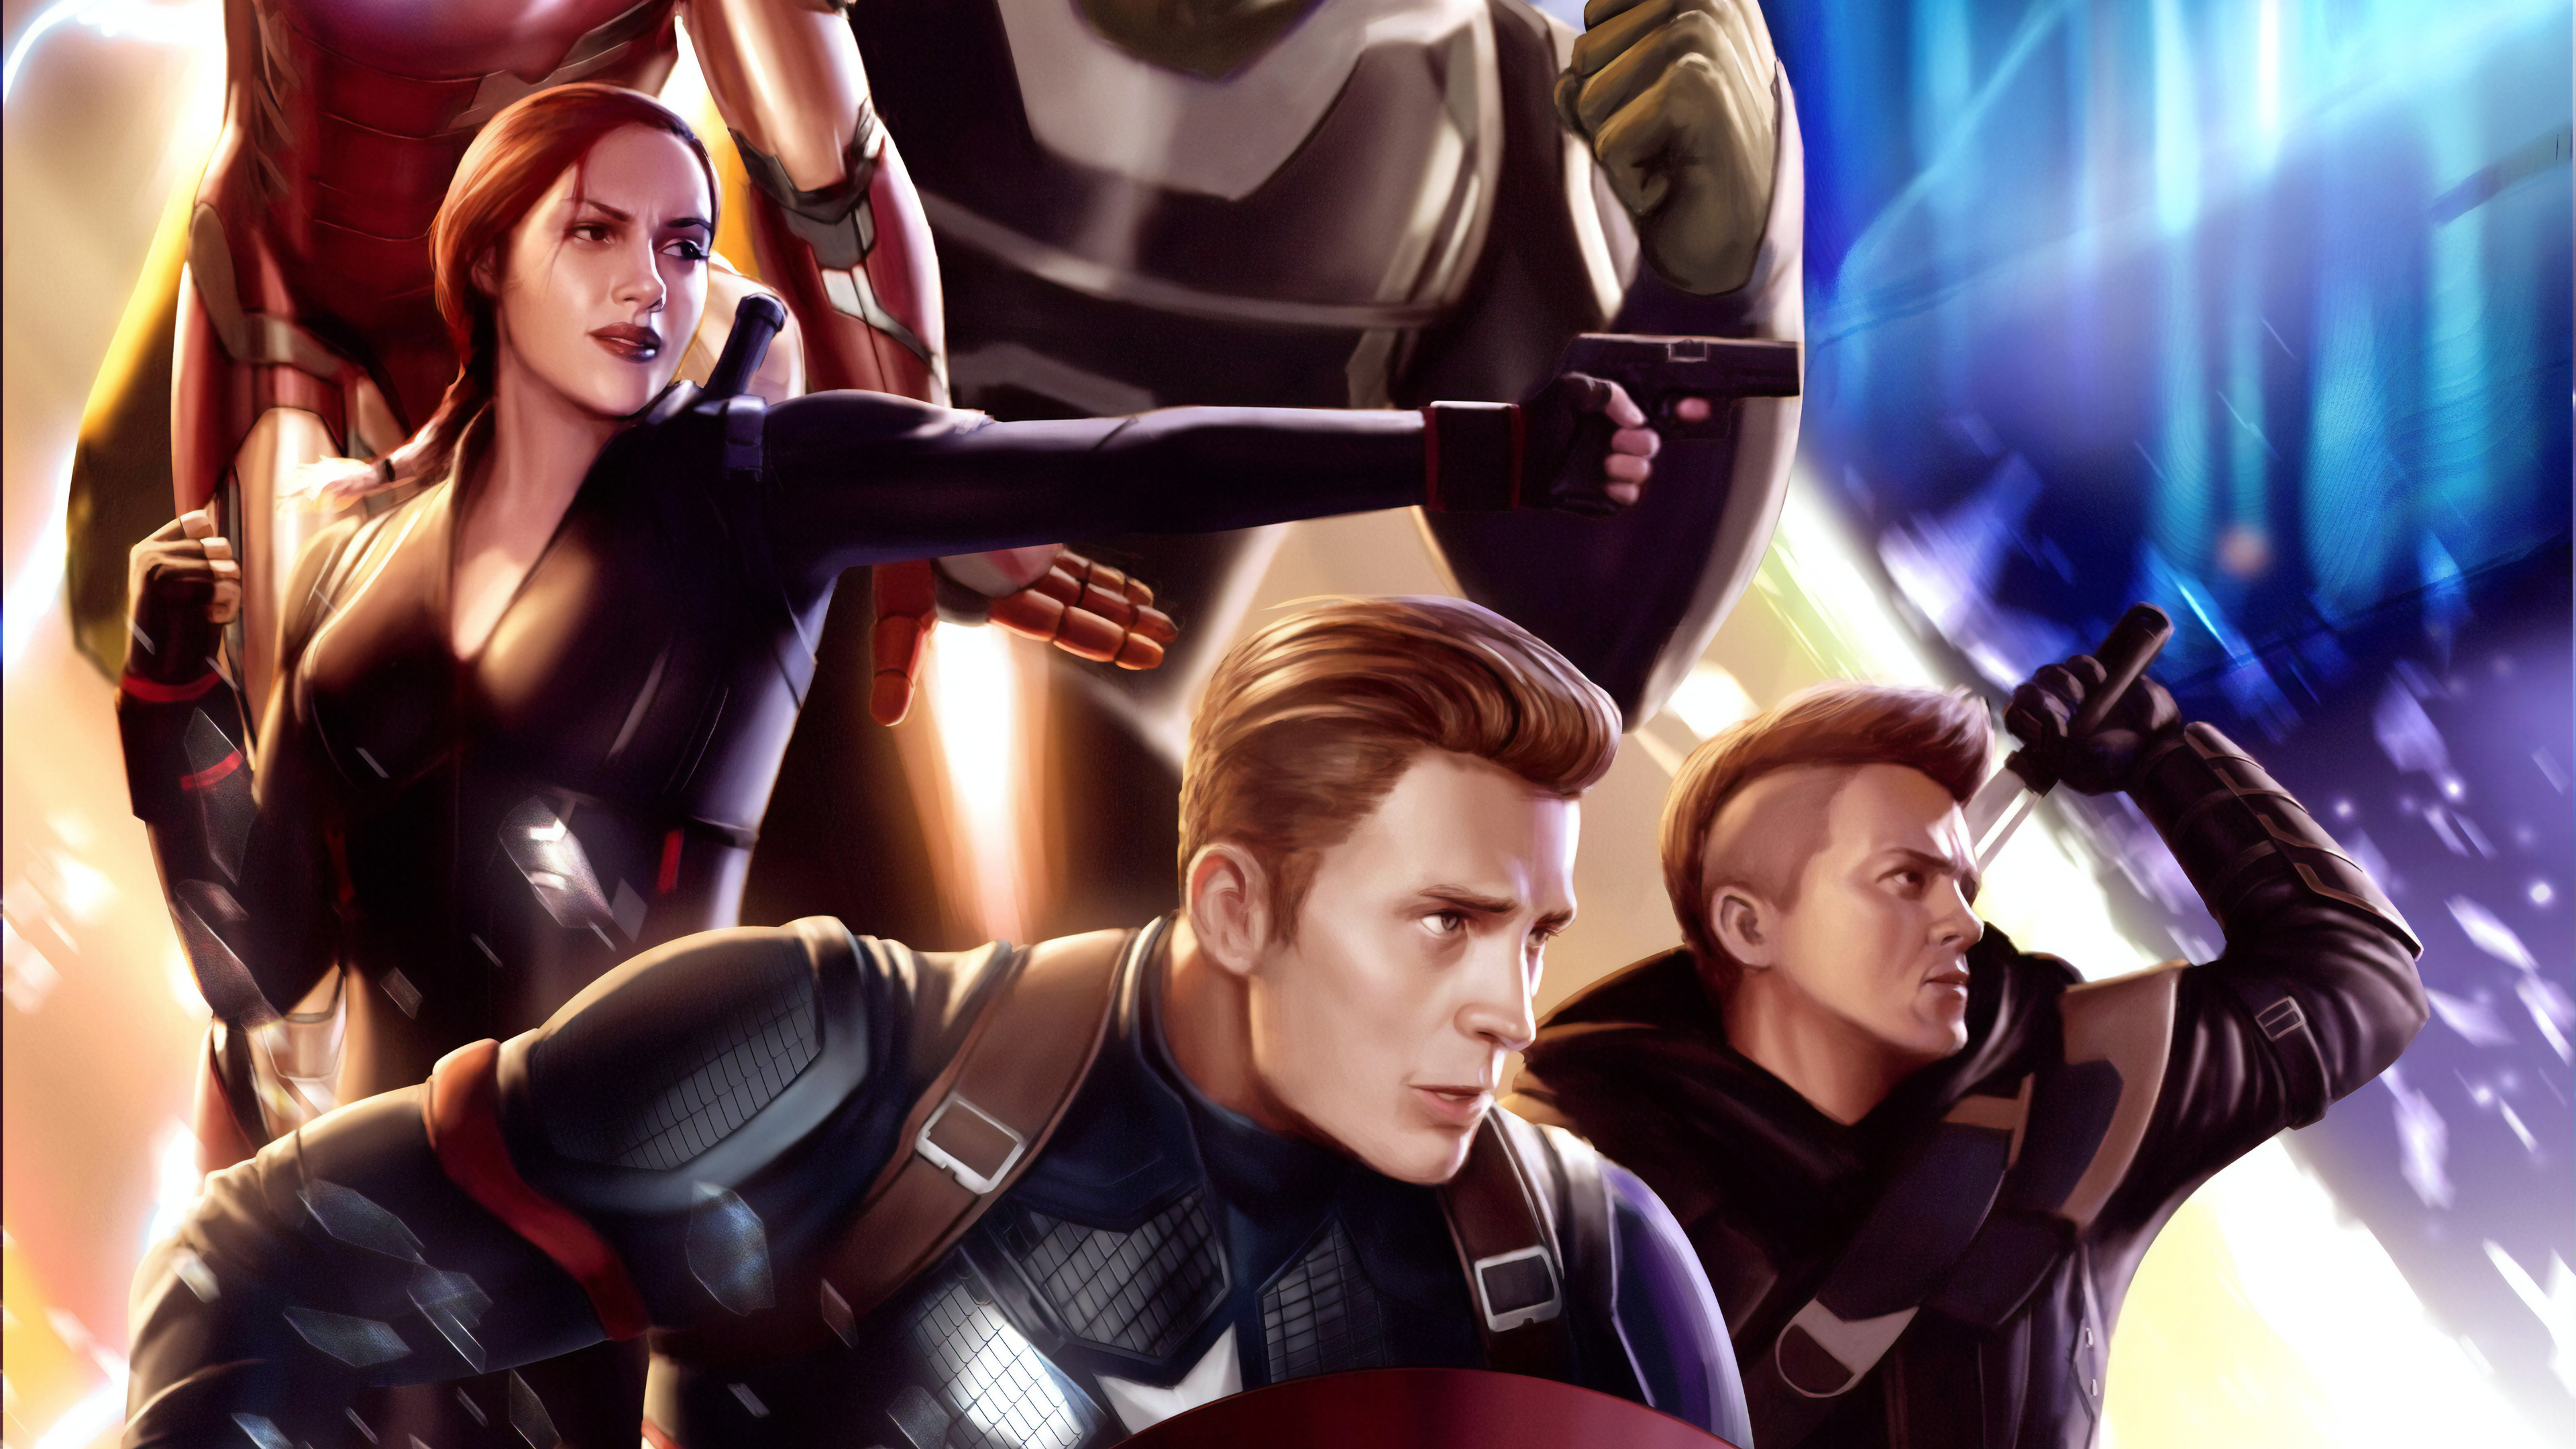 endgame art 1565053945 - Endgame Art - superheroes wallpapers, hd-wallpapers, captain america wallpapers, black widow wallpapers, avengers endgame wallpapers, artwork wallpapers, 4k-wallpapers